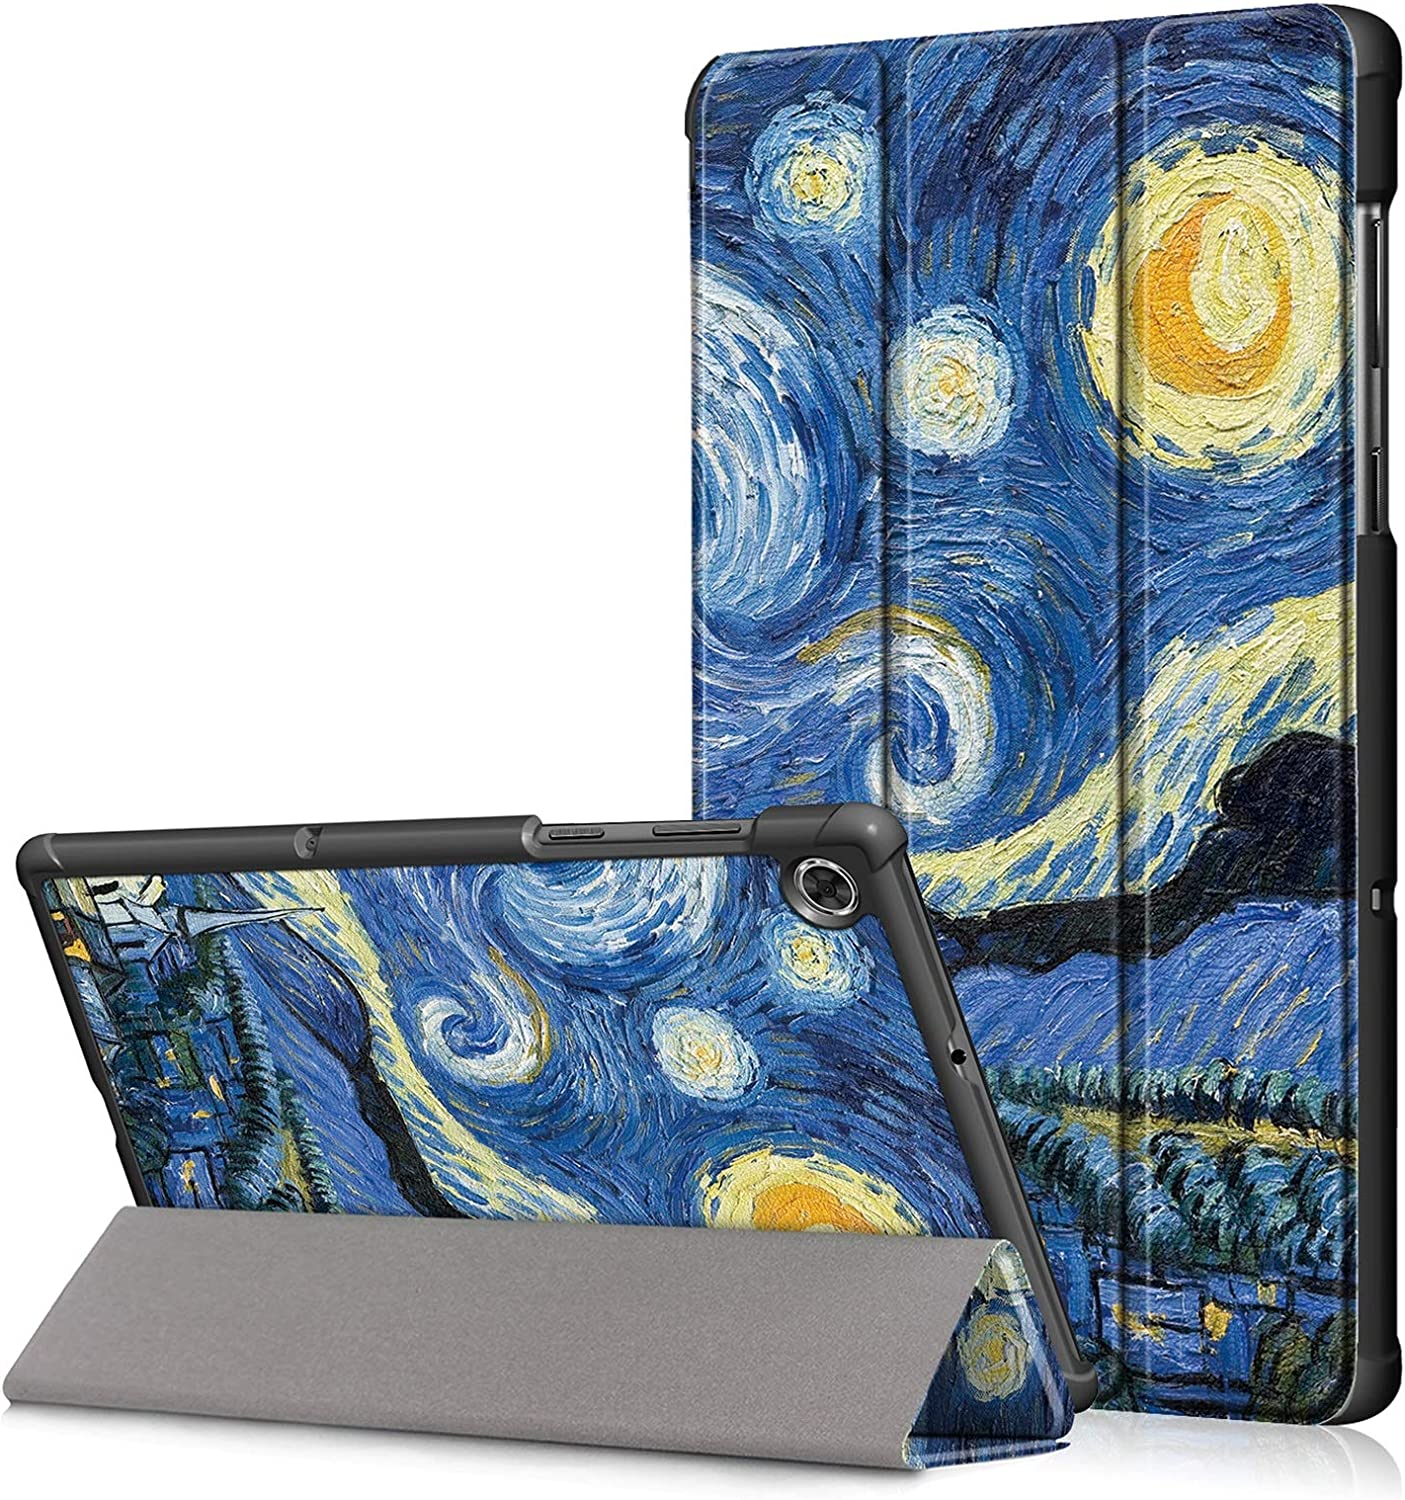 DETUOSI Smart Case Compatible with Lenovo Tab M10 HD 10.1 inch 2020 [2nd Gen] (Model: TB-X306F) Tablet,【Auto Sleep/Wake】 Slim Lightweight PU Leather Tri-Fold Magnetic Stand Shell Cover #Starry Sky